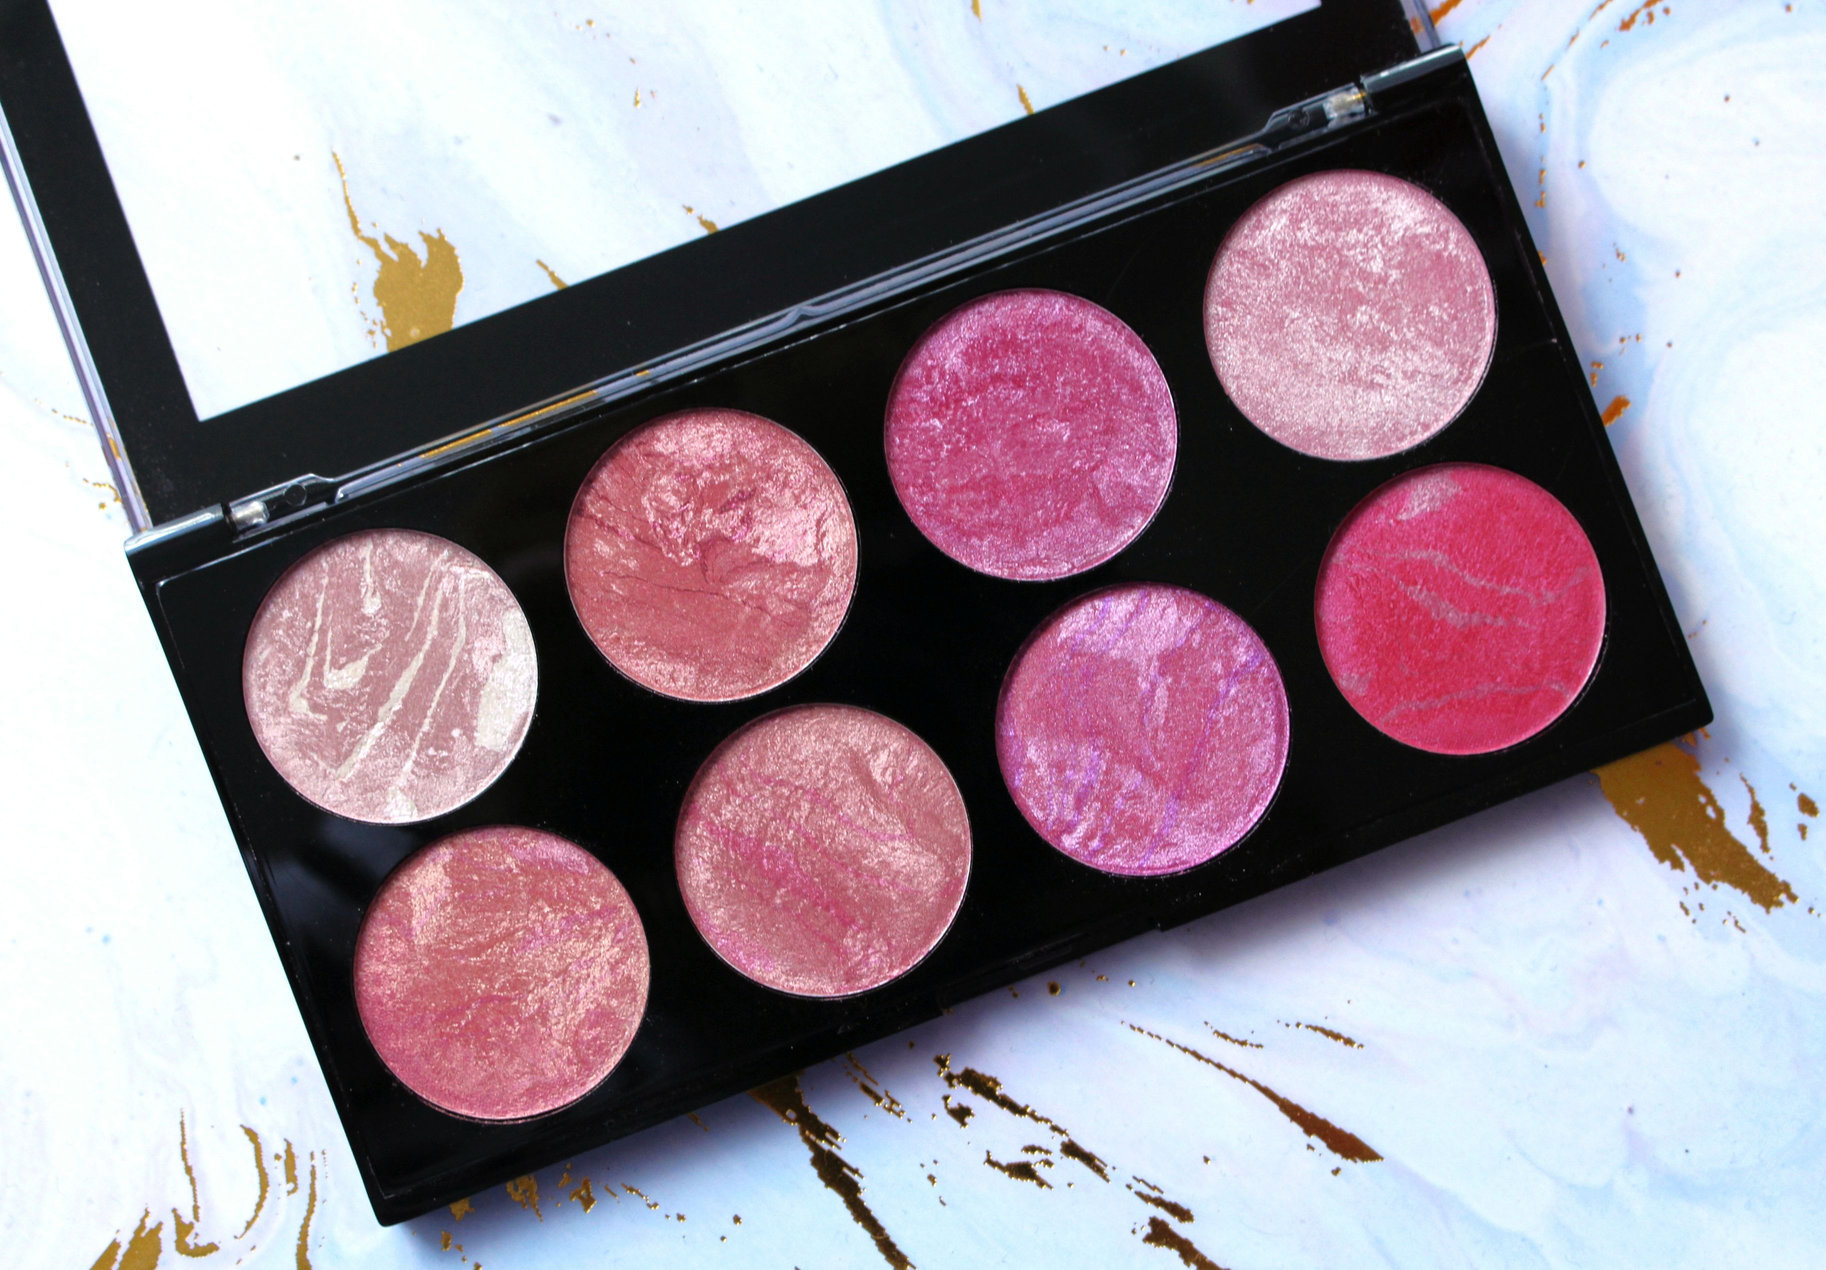 Back in September, Revolution launched in New Zealand on the Farmers website. Only a couple of days earlier I was eyeing up the Blush Queen palette on the ...